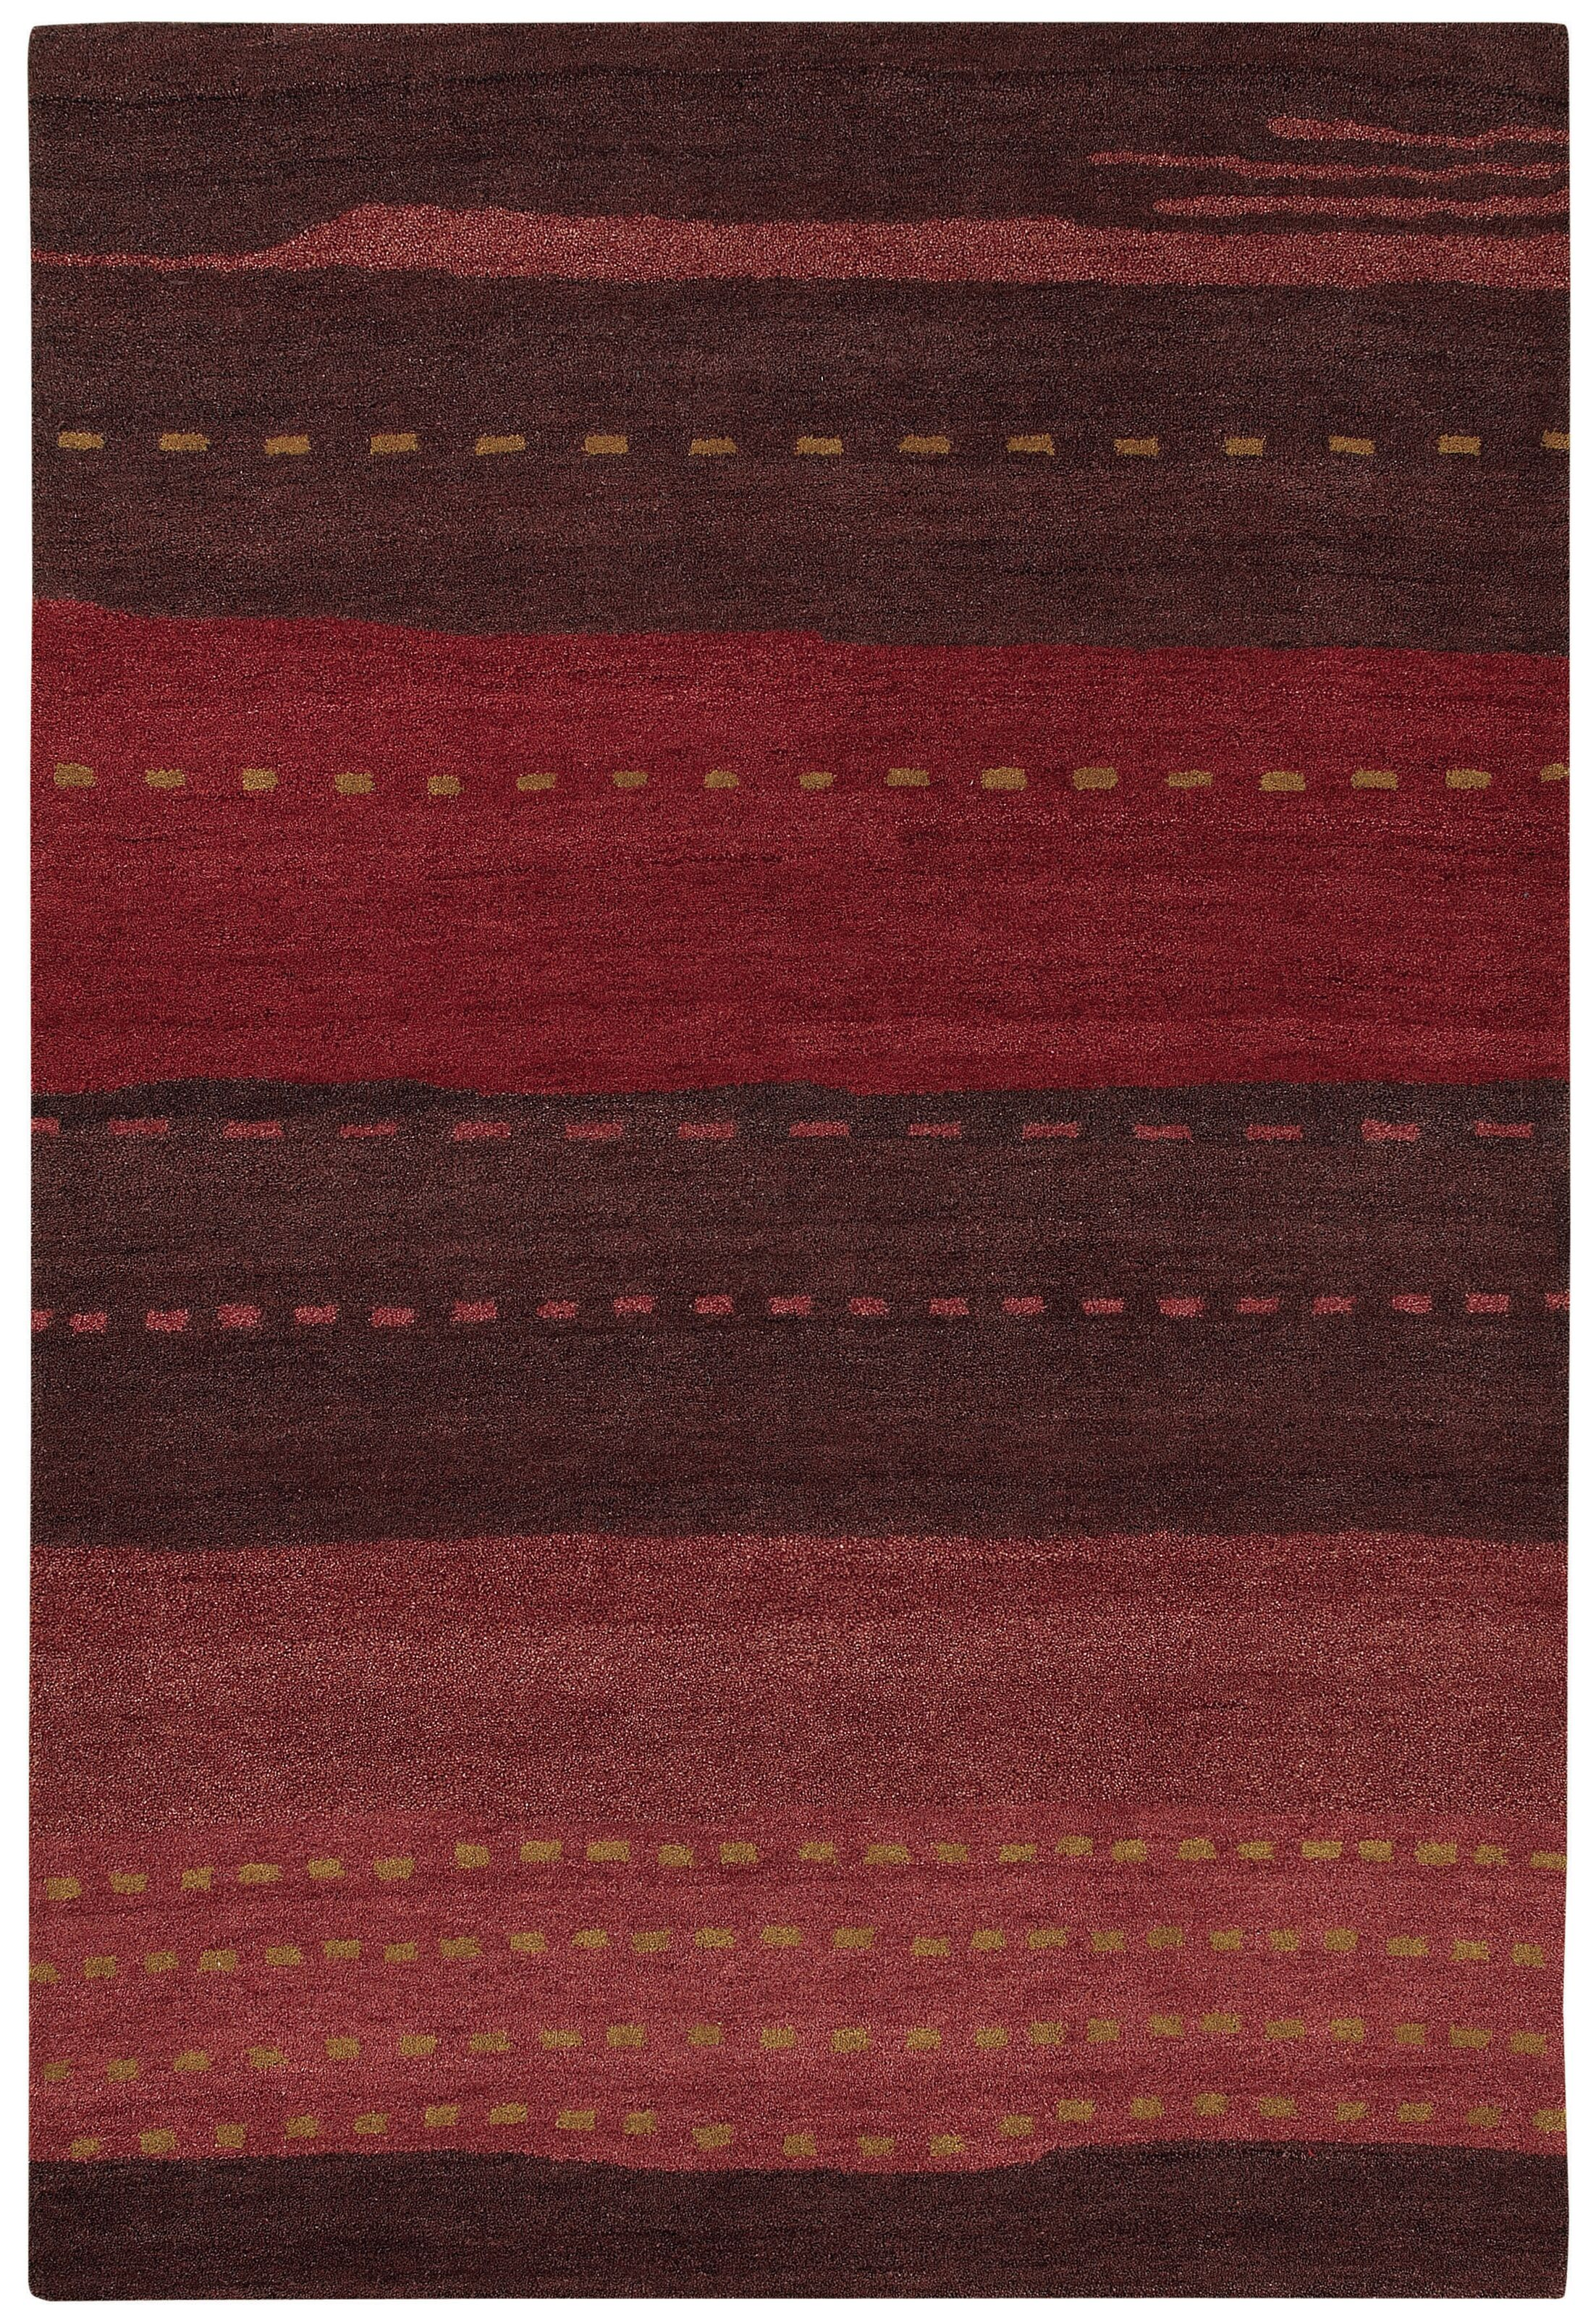 Cora Hand-Woven Red/Brown Area Rug Rug Size: Rectangle 9'6